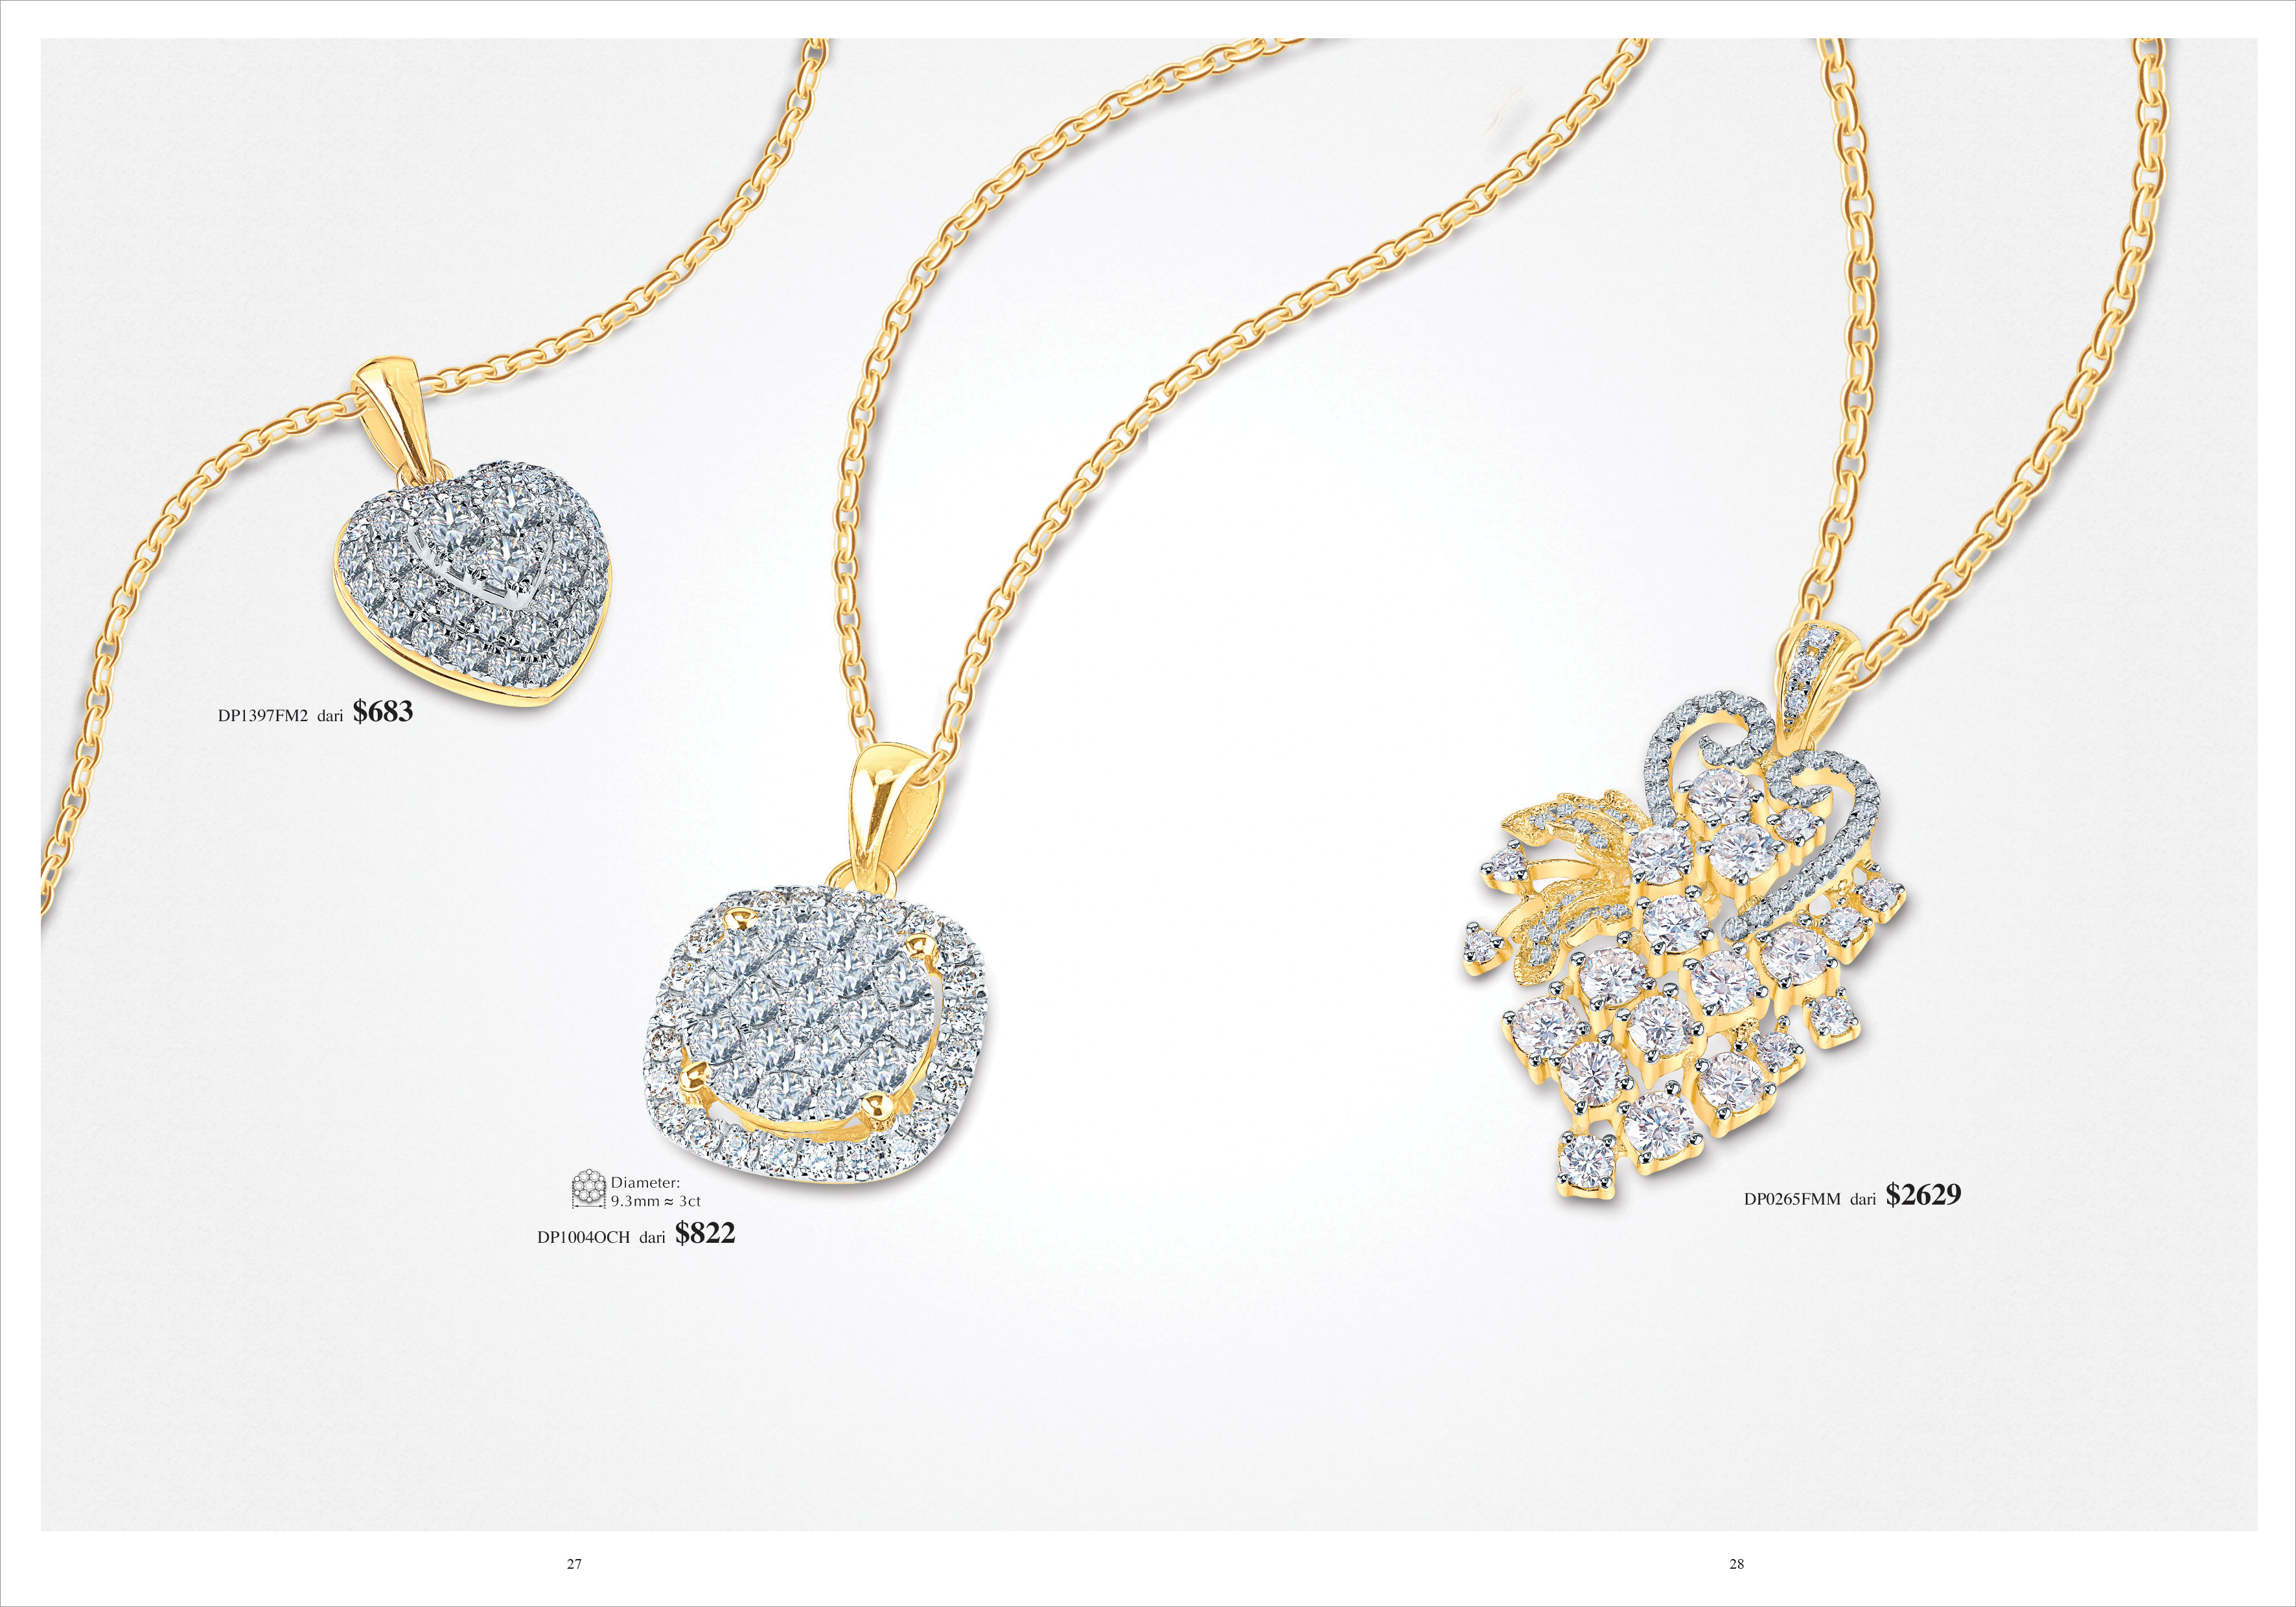 Ming Seng diamond pendants